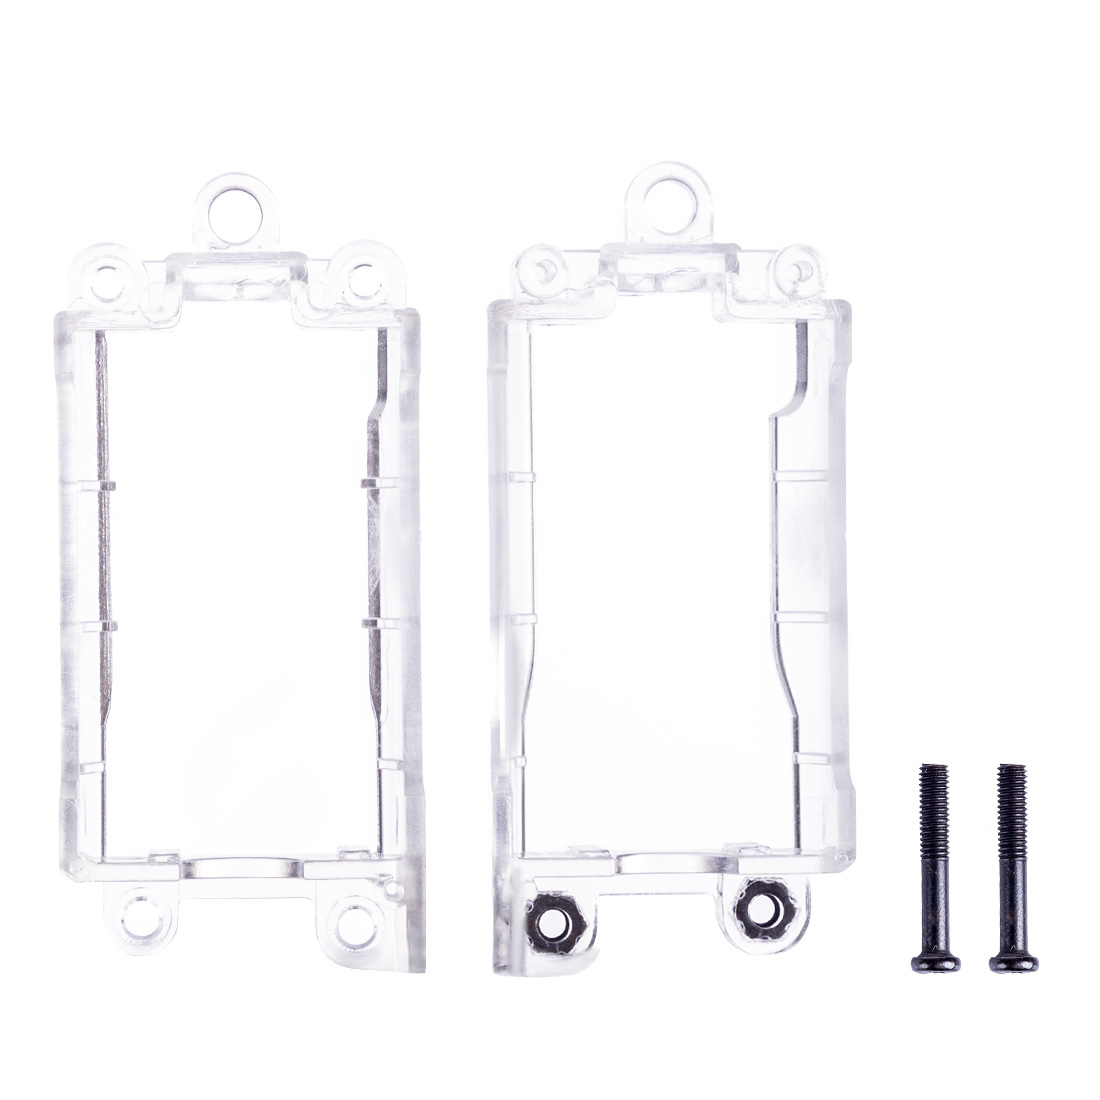 JM Original Motor Frame For JM Gen.8 M-4A1 Water Gel Beads Blaster Modification - Transparent